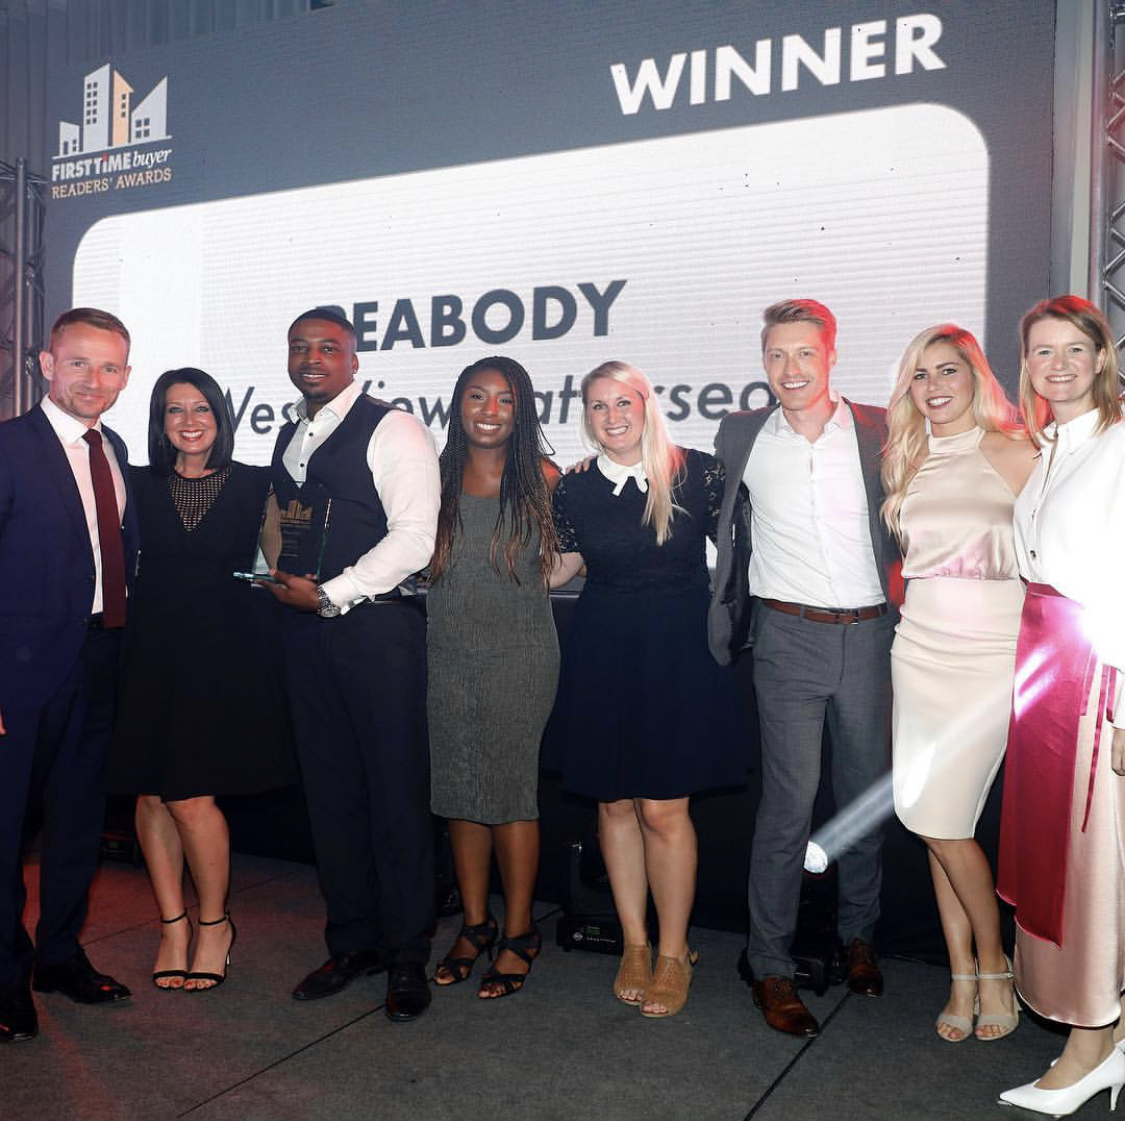 Leonnie Whitehead, Senior Designer at Suna Interior Design, joined the Peabody team on stage to collect the award for Best Show Home at The awards ceremony held at the Marriott Hotel Grosvenor Square on Friday 26th April 2019.